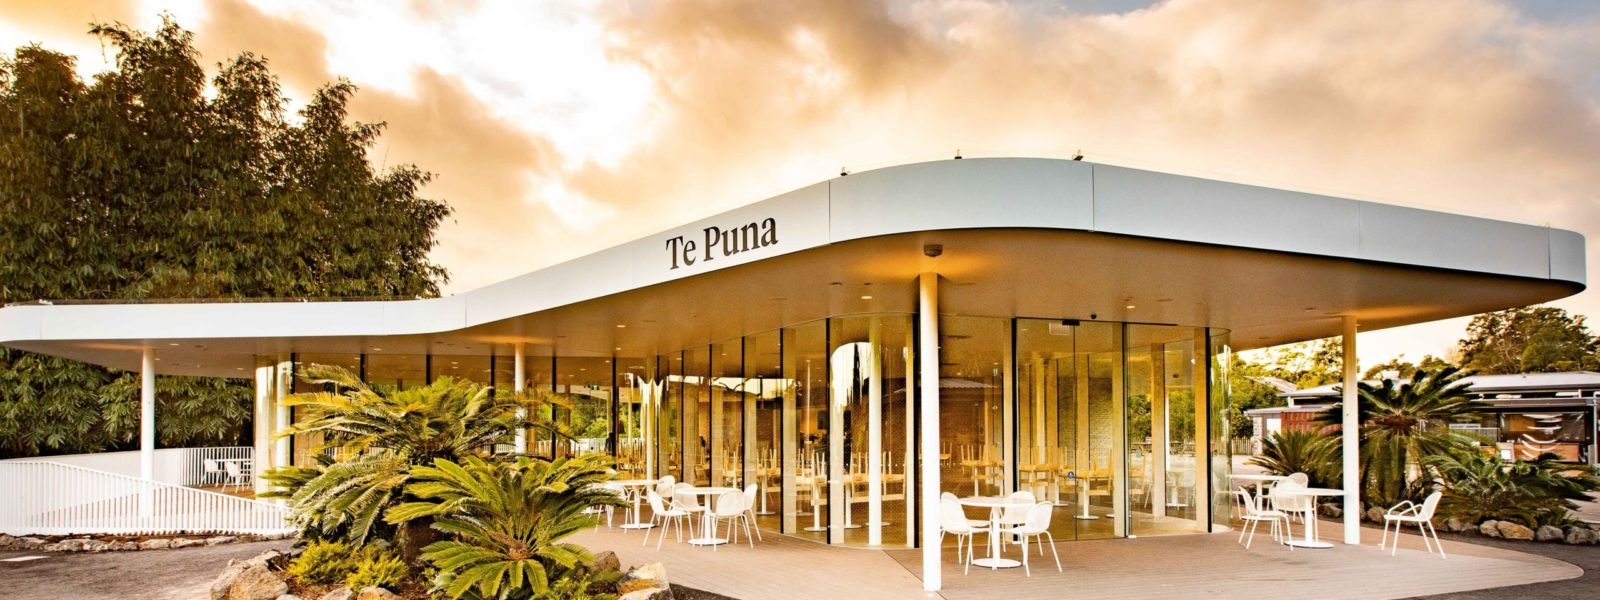 Te Puna cafe_NZ Strong